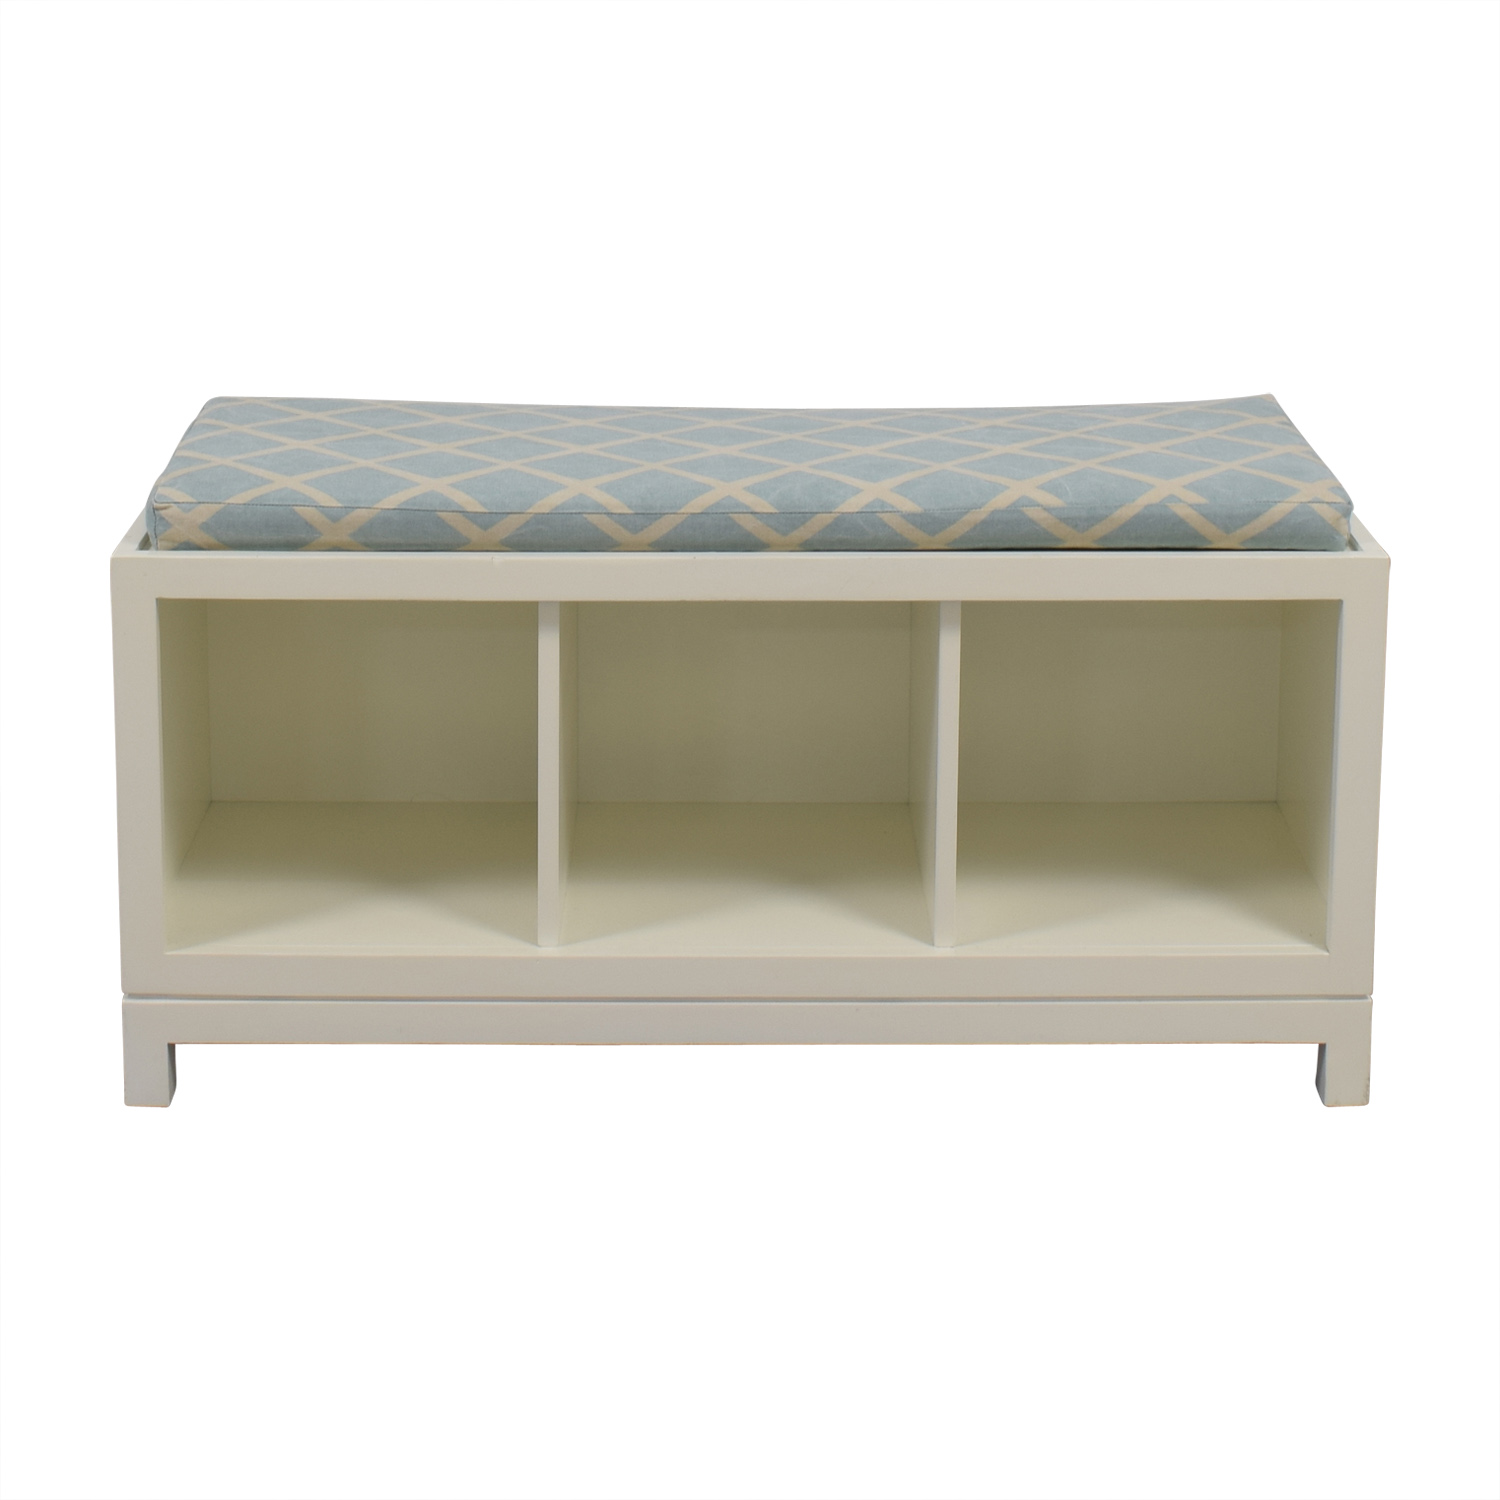 Awe Inspiring 65 Off Serena Lily Serena And Lily White Storage Bench Chairs Pdpeps Interior Chair Design Pdpepsorg